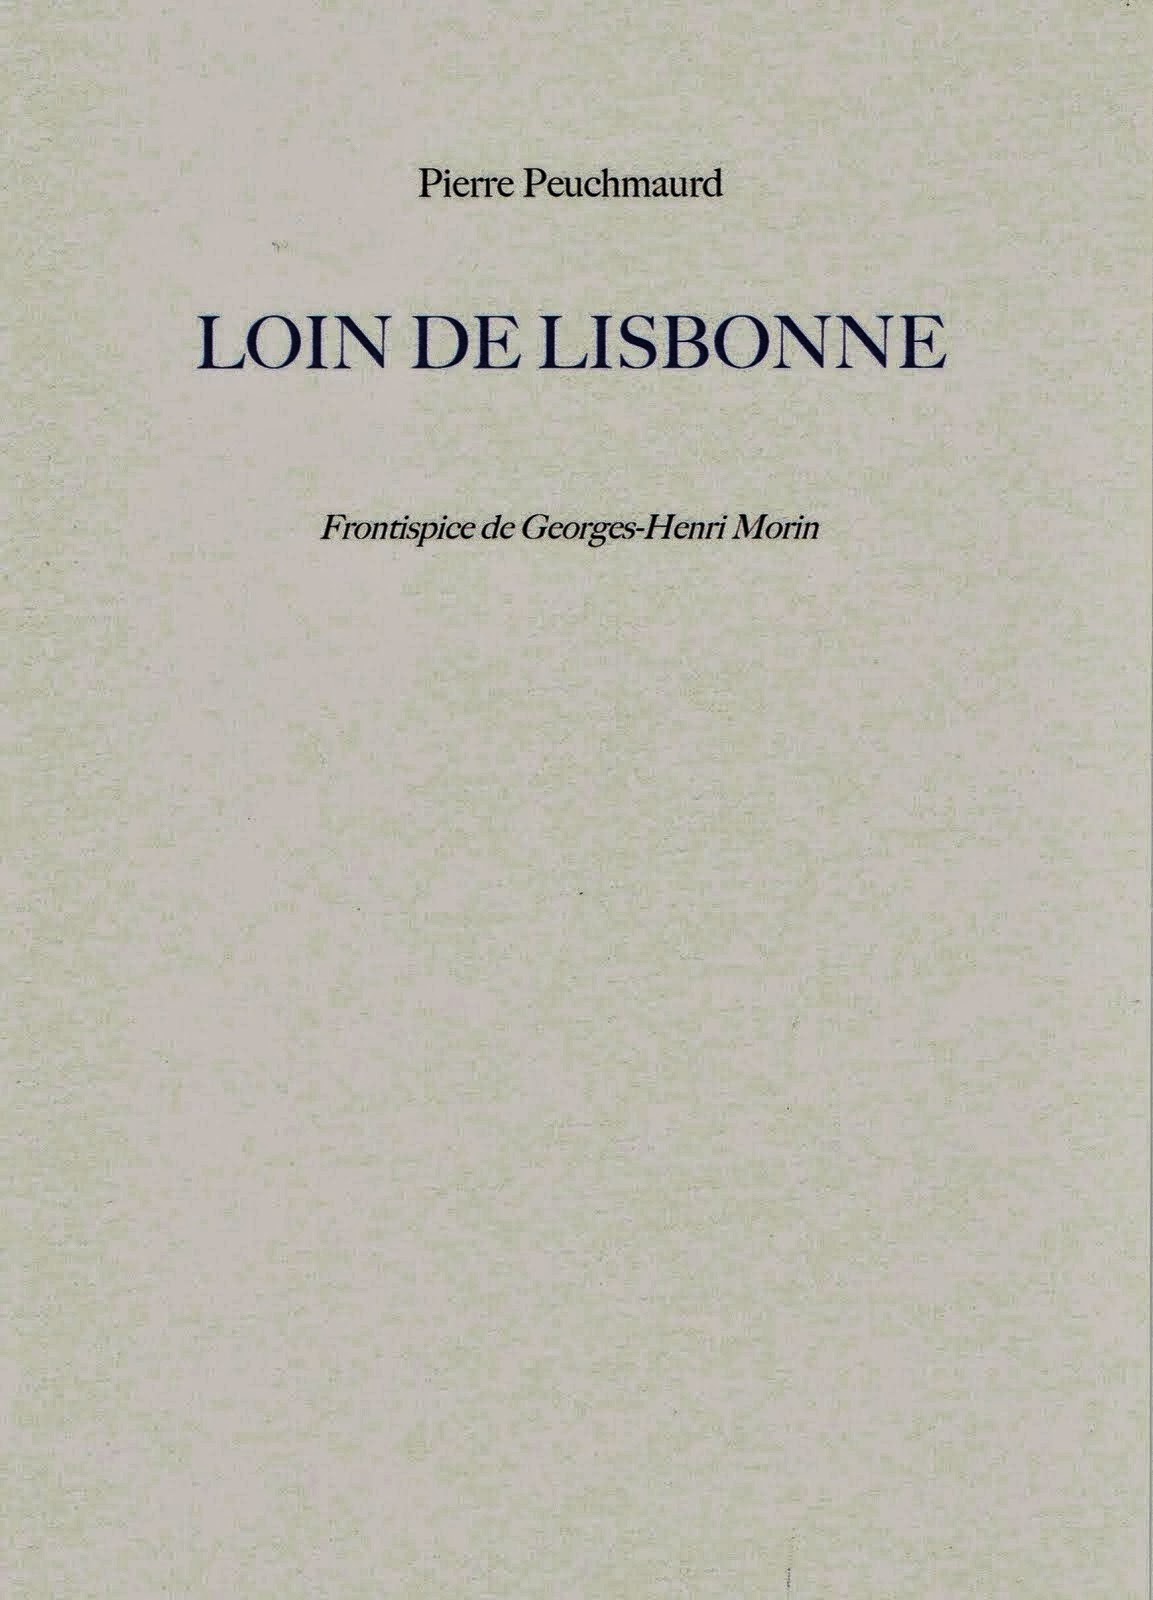 Pierre PEUCHMAURD, LOIN DE LISBONNE, Collection de l'Umbo, septembre 2013